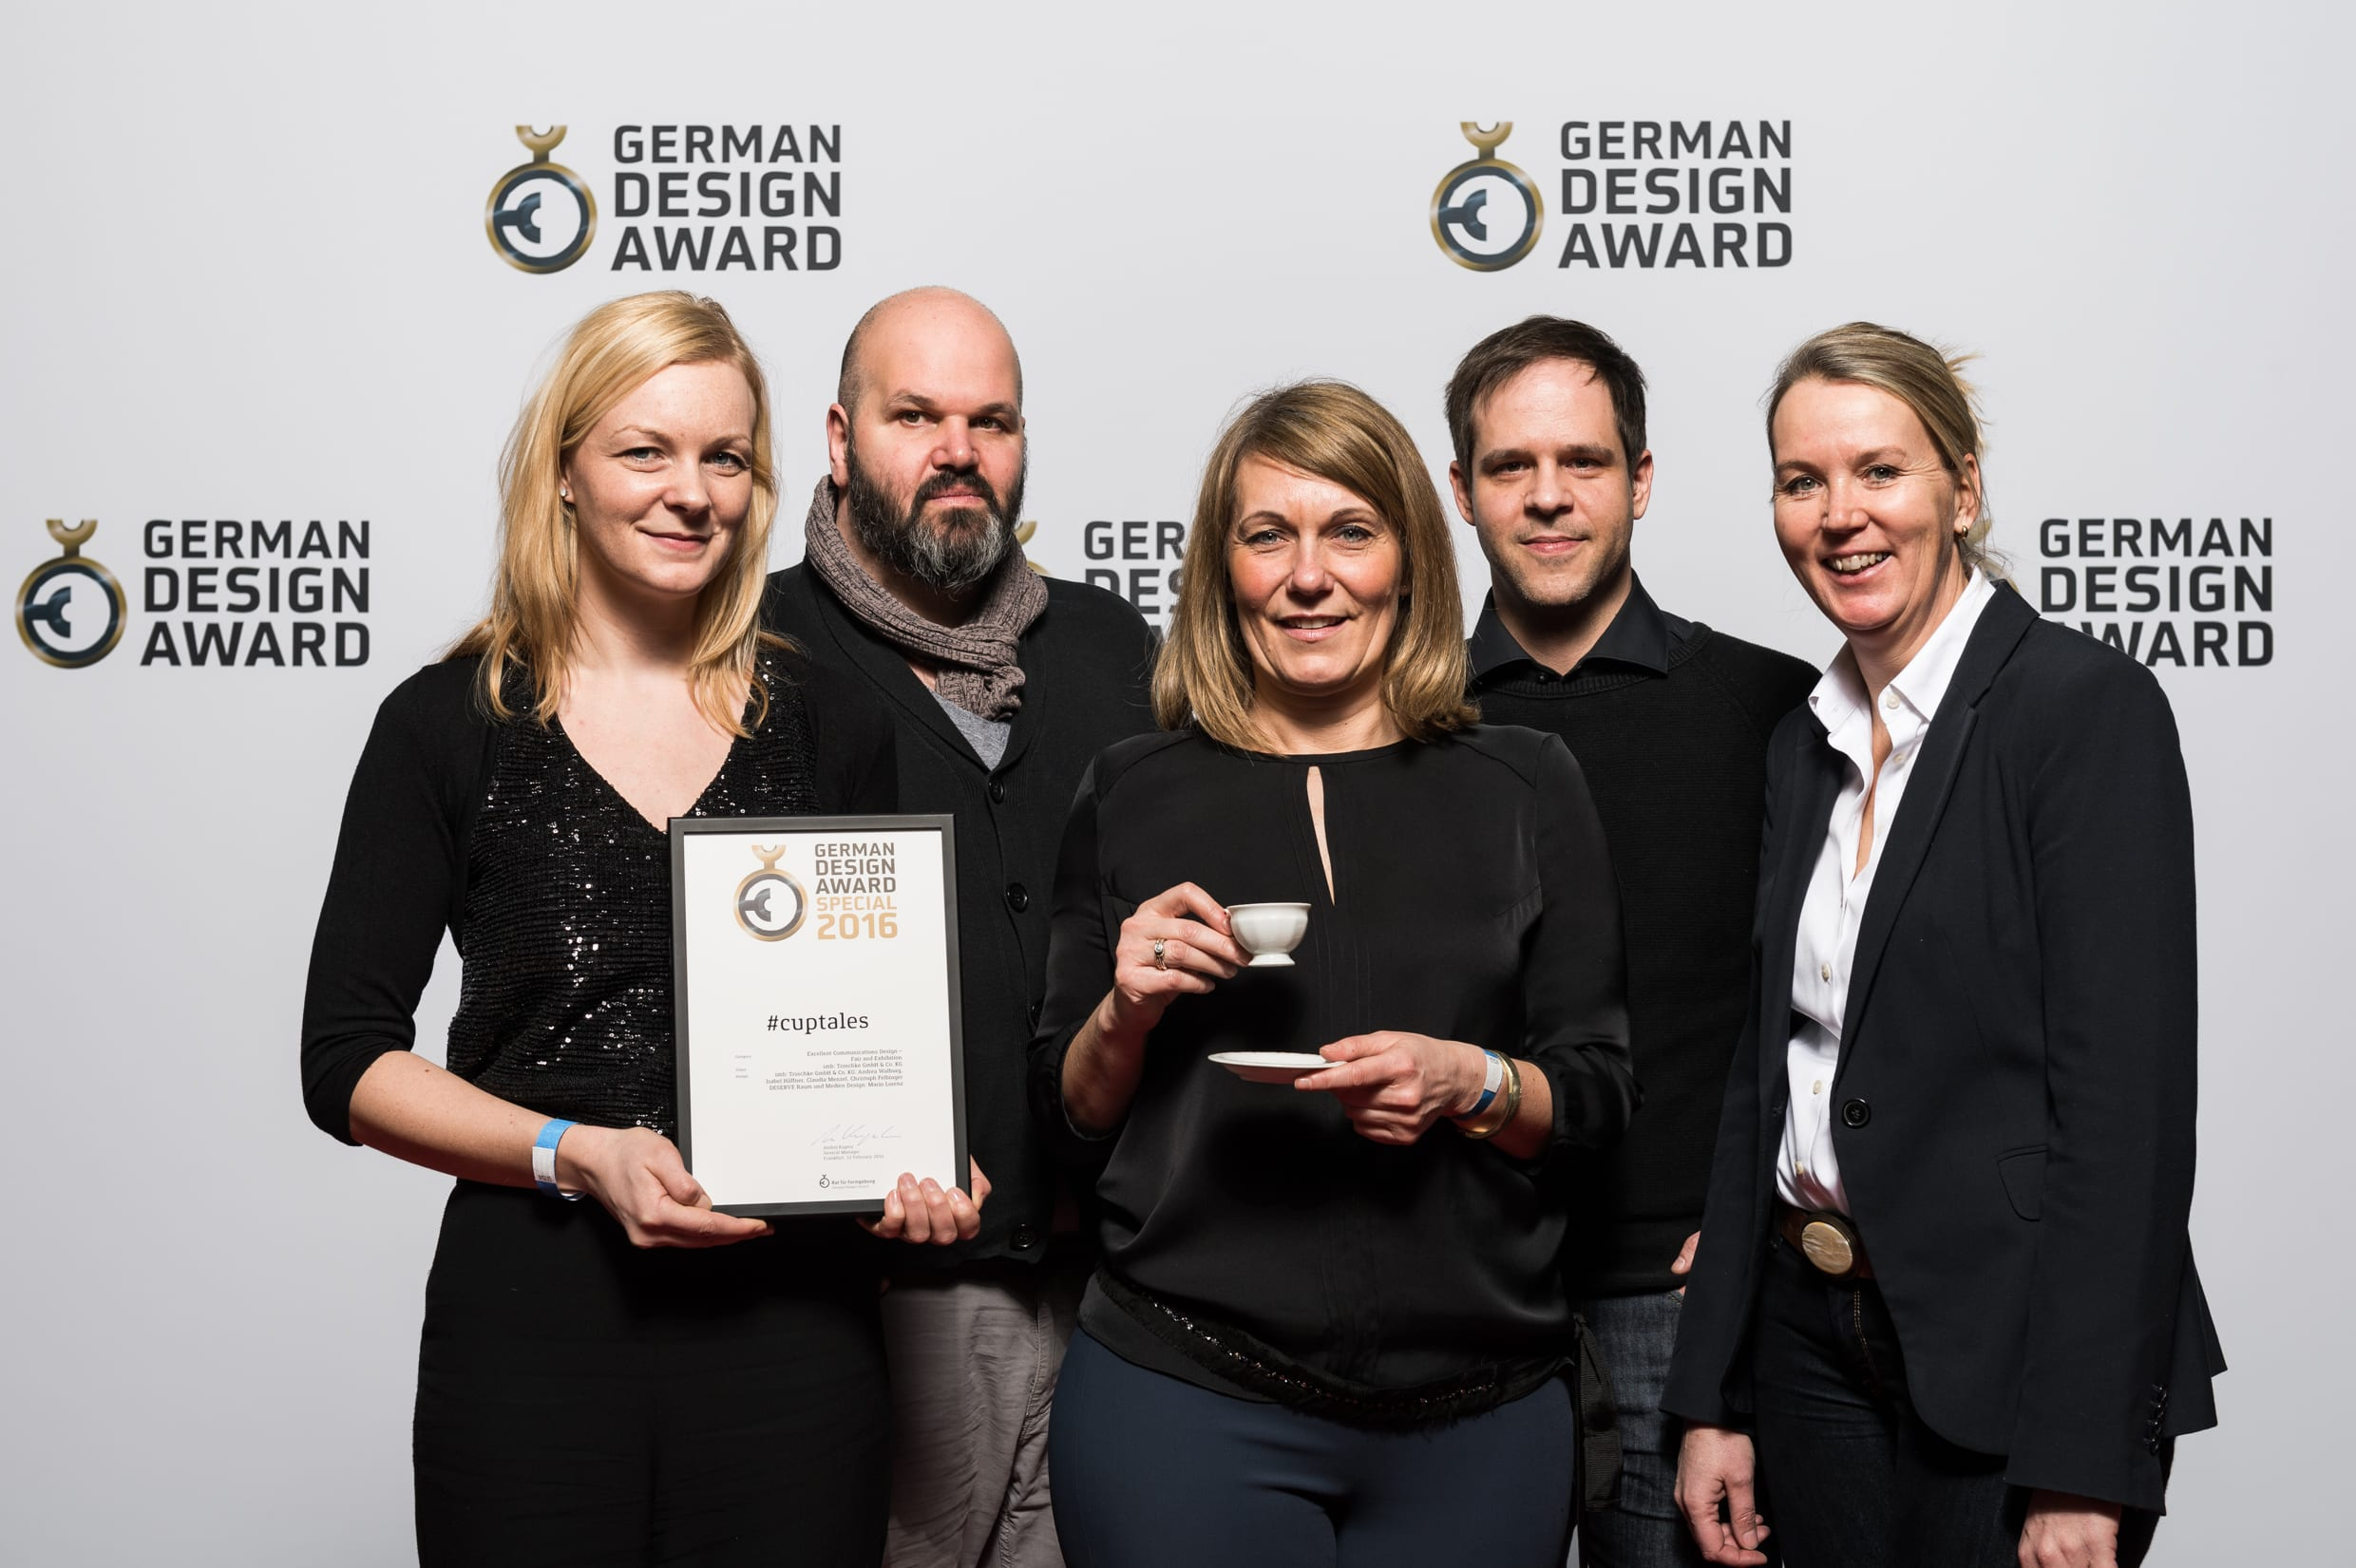 German Design Award für #cuptales